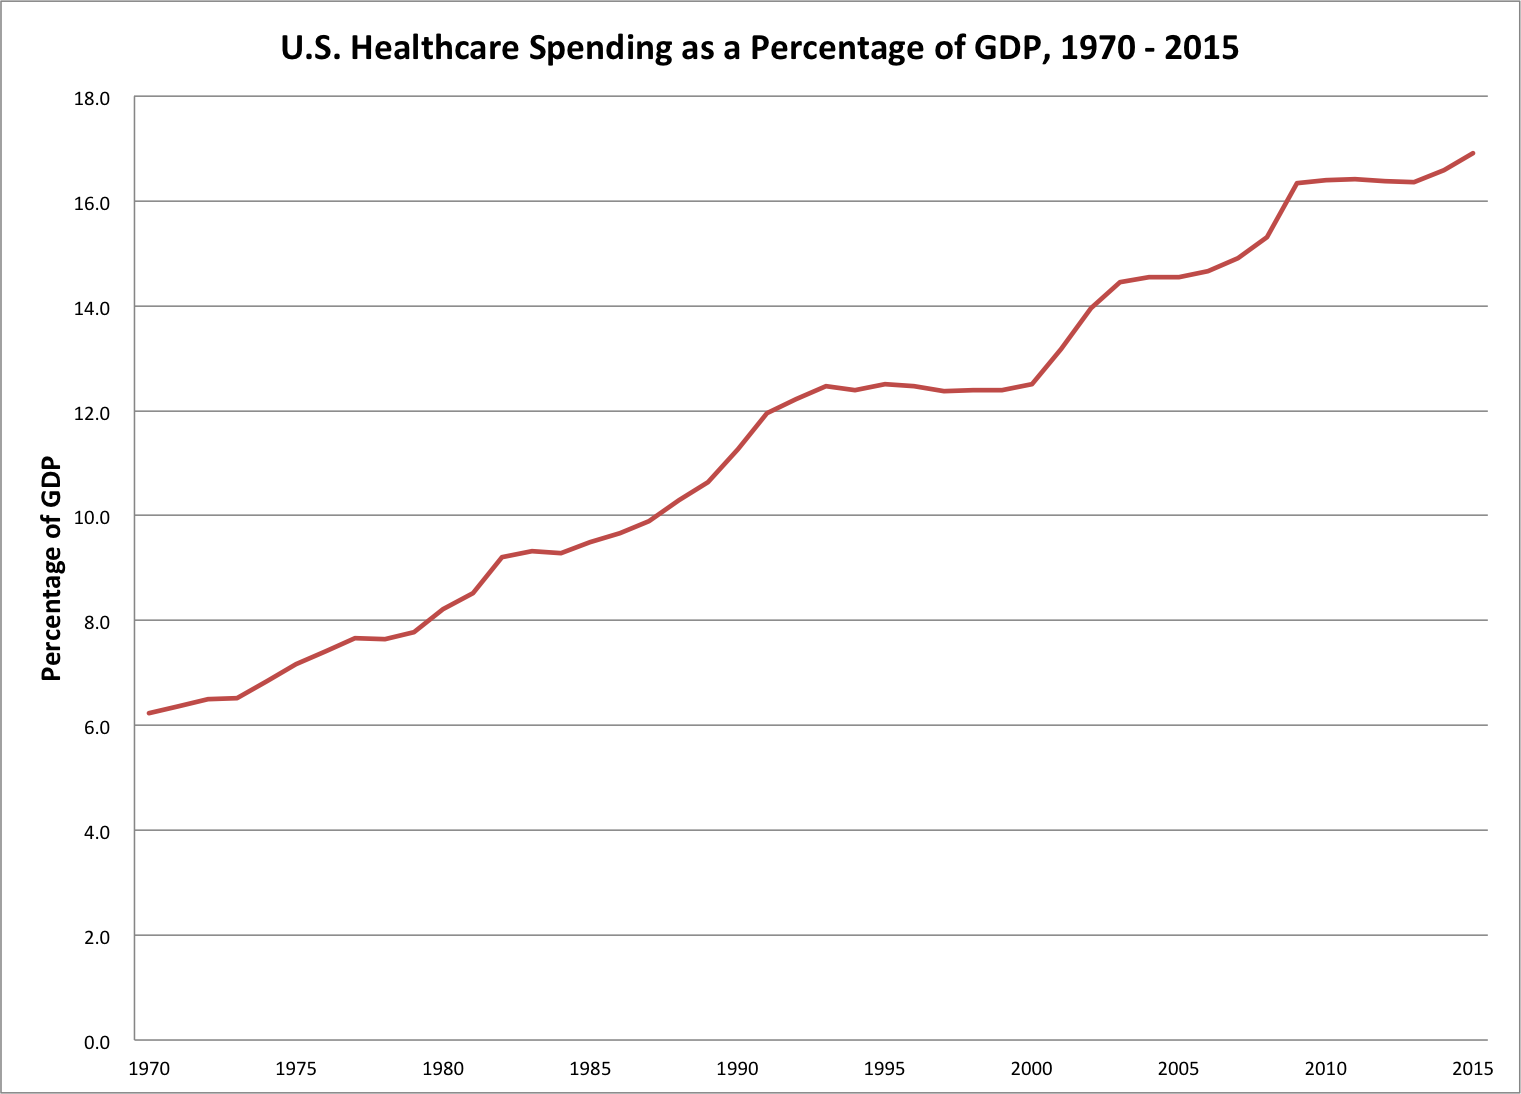 oecd-healthcare-expenditure-data